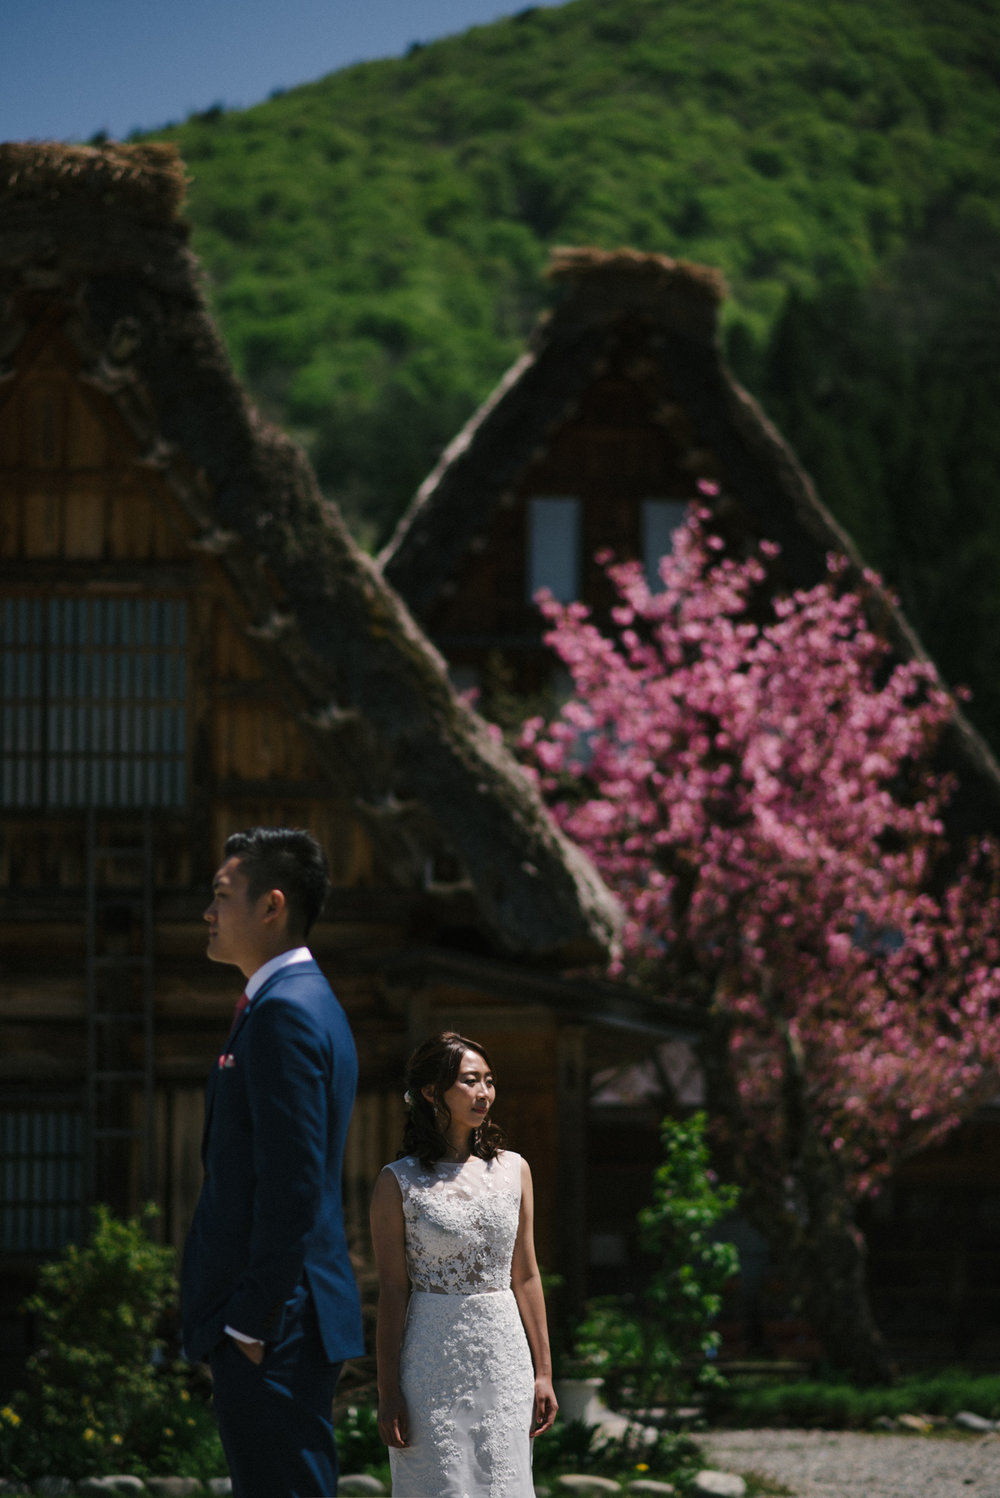 shirakawago_prewedding-21.jpg